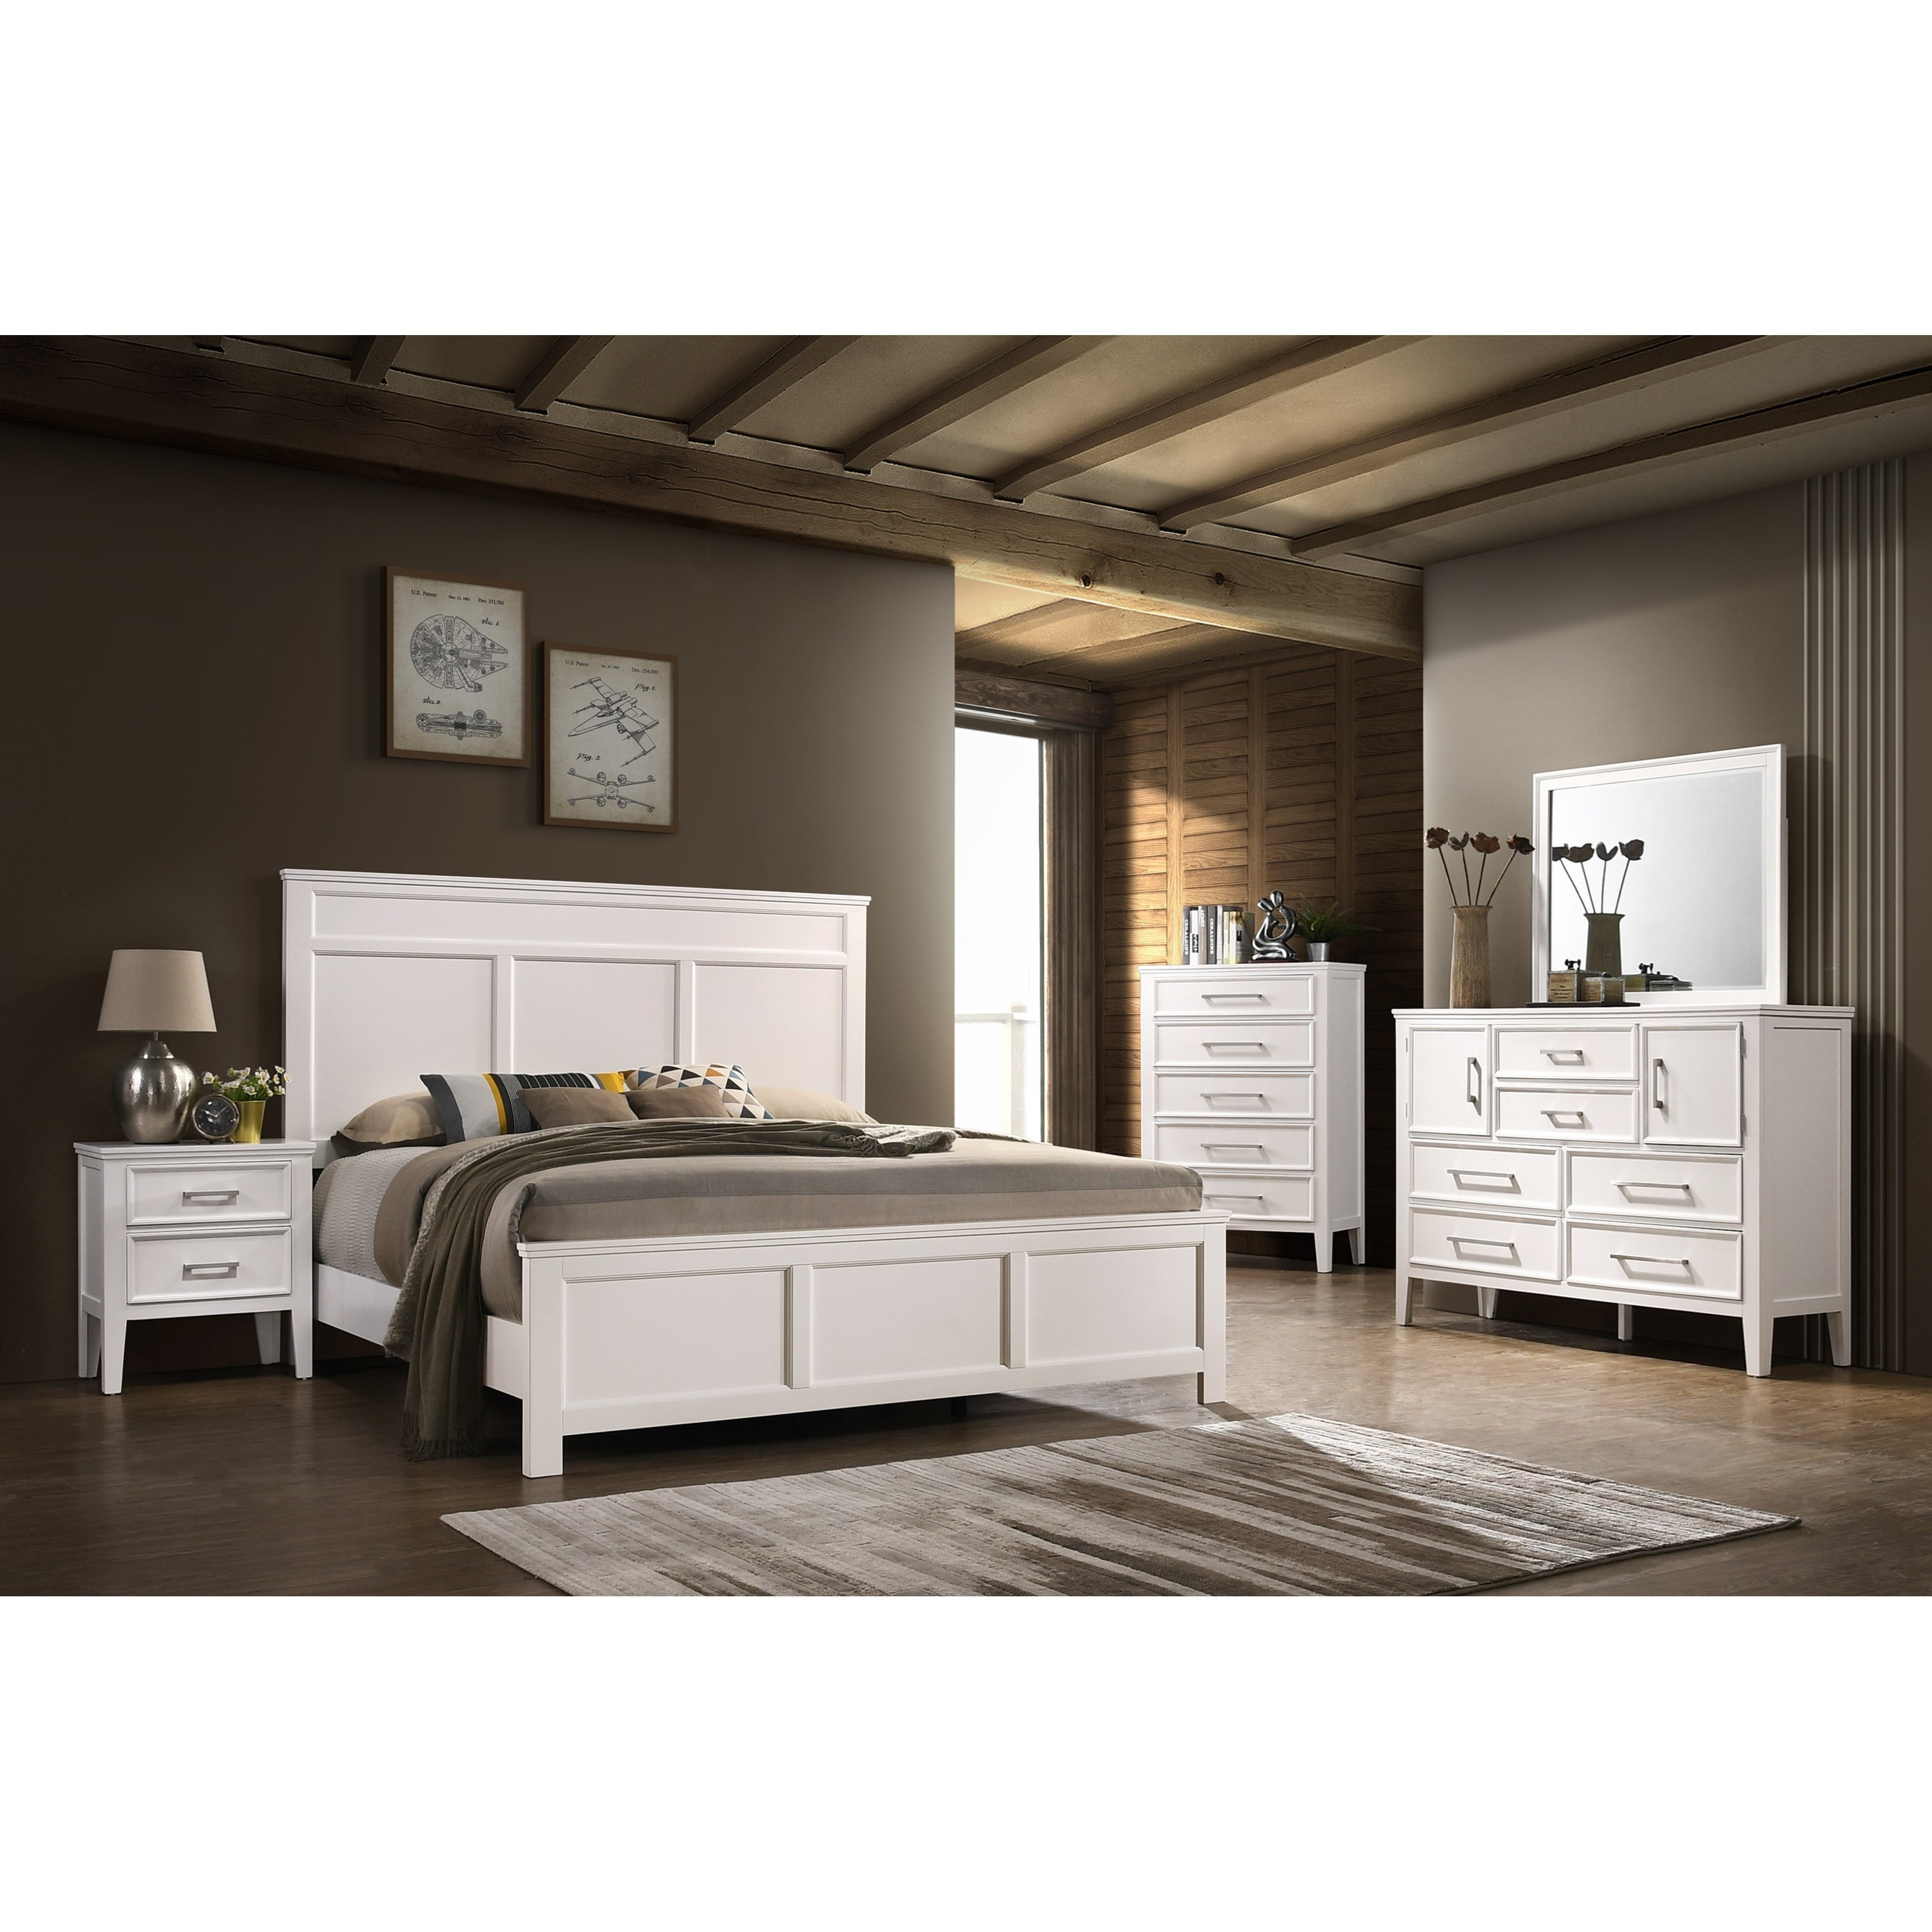 Andover Queen Bedroom Group by New Classic at Carolina Direct